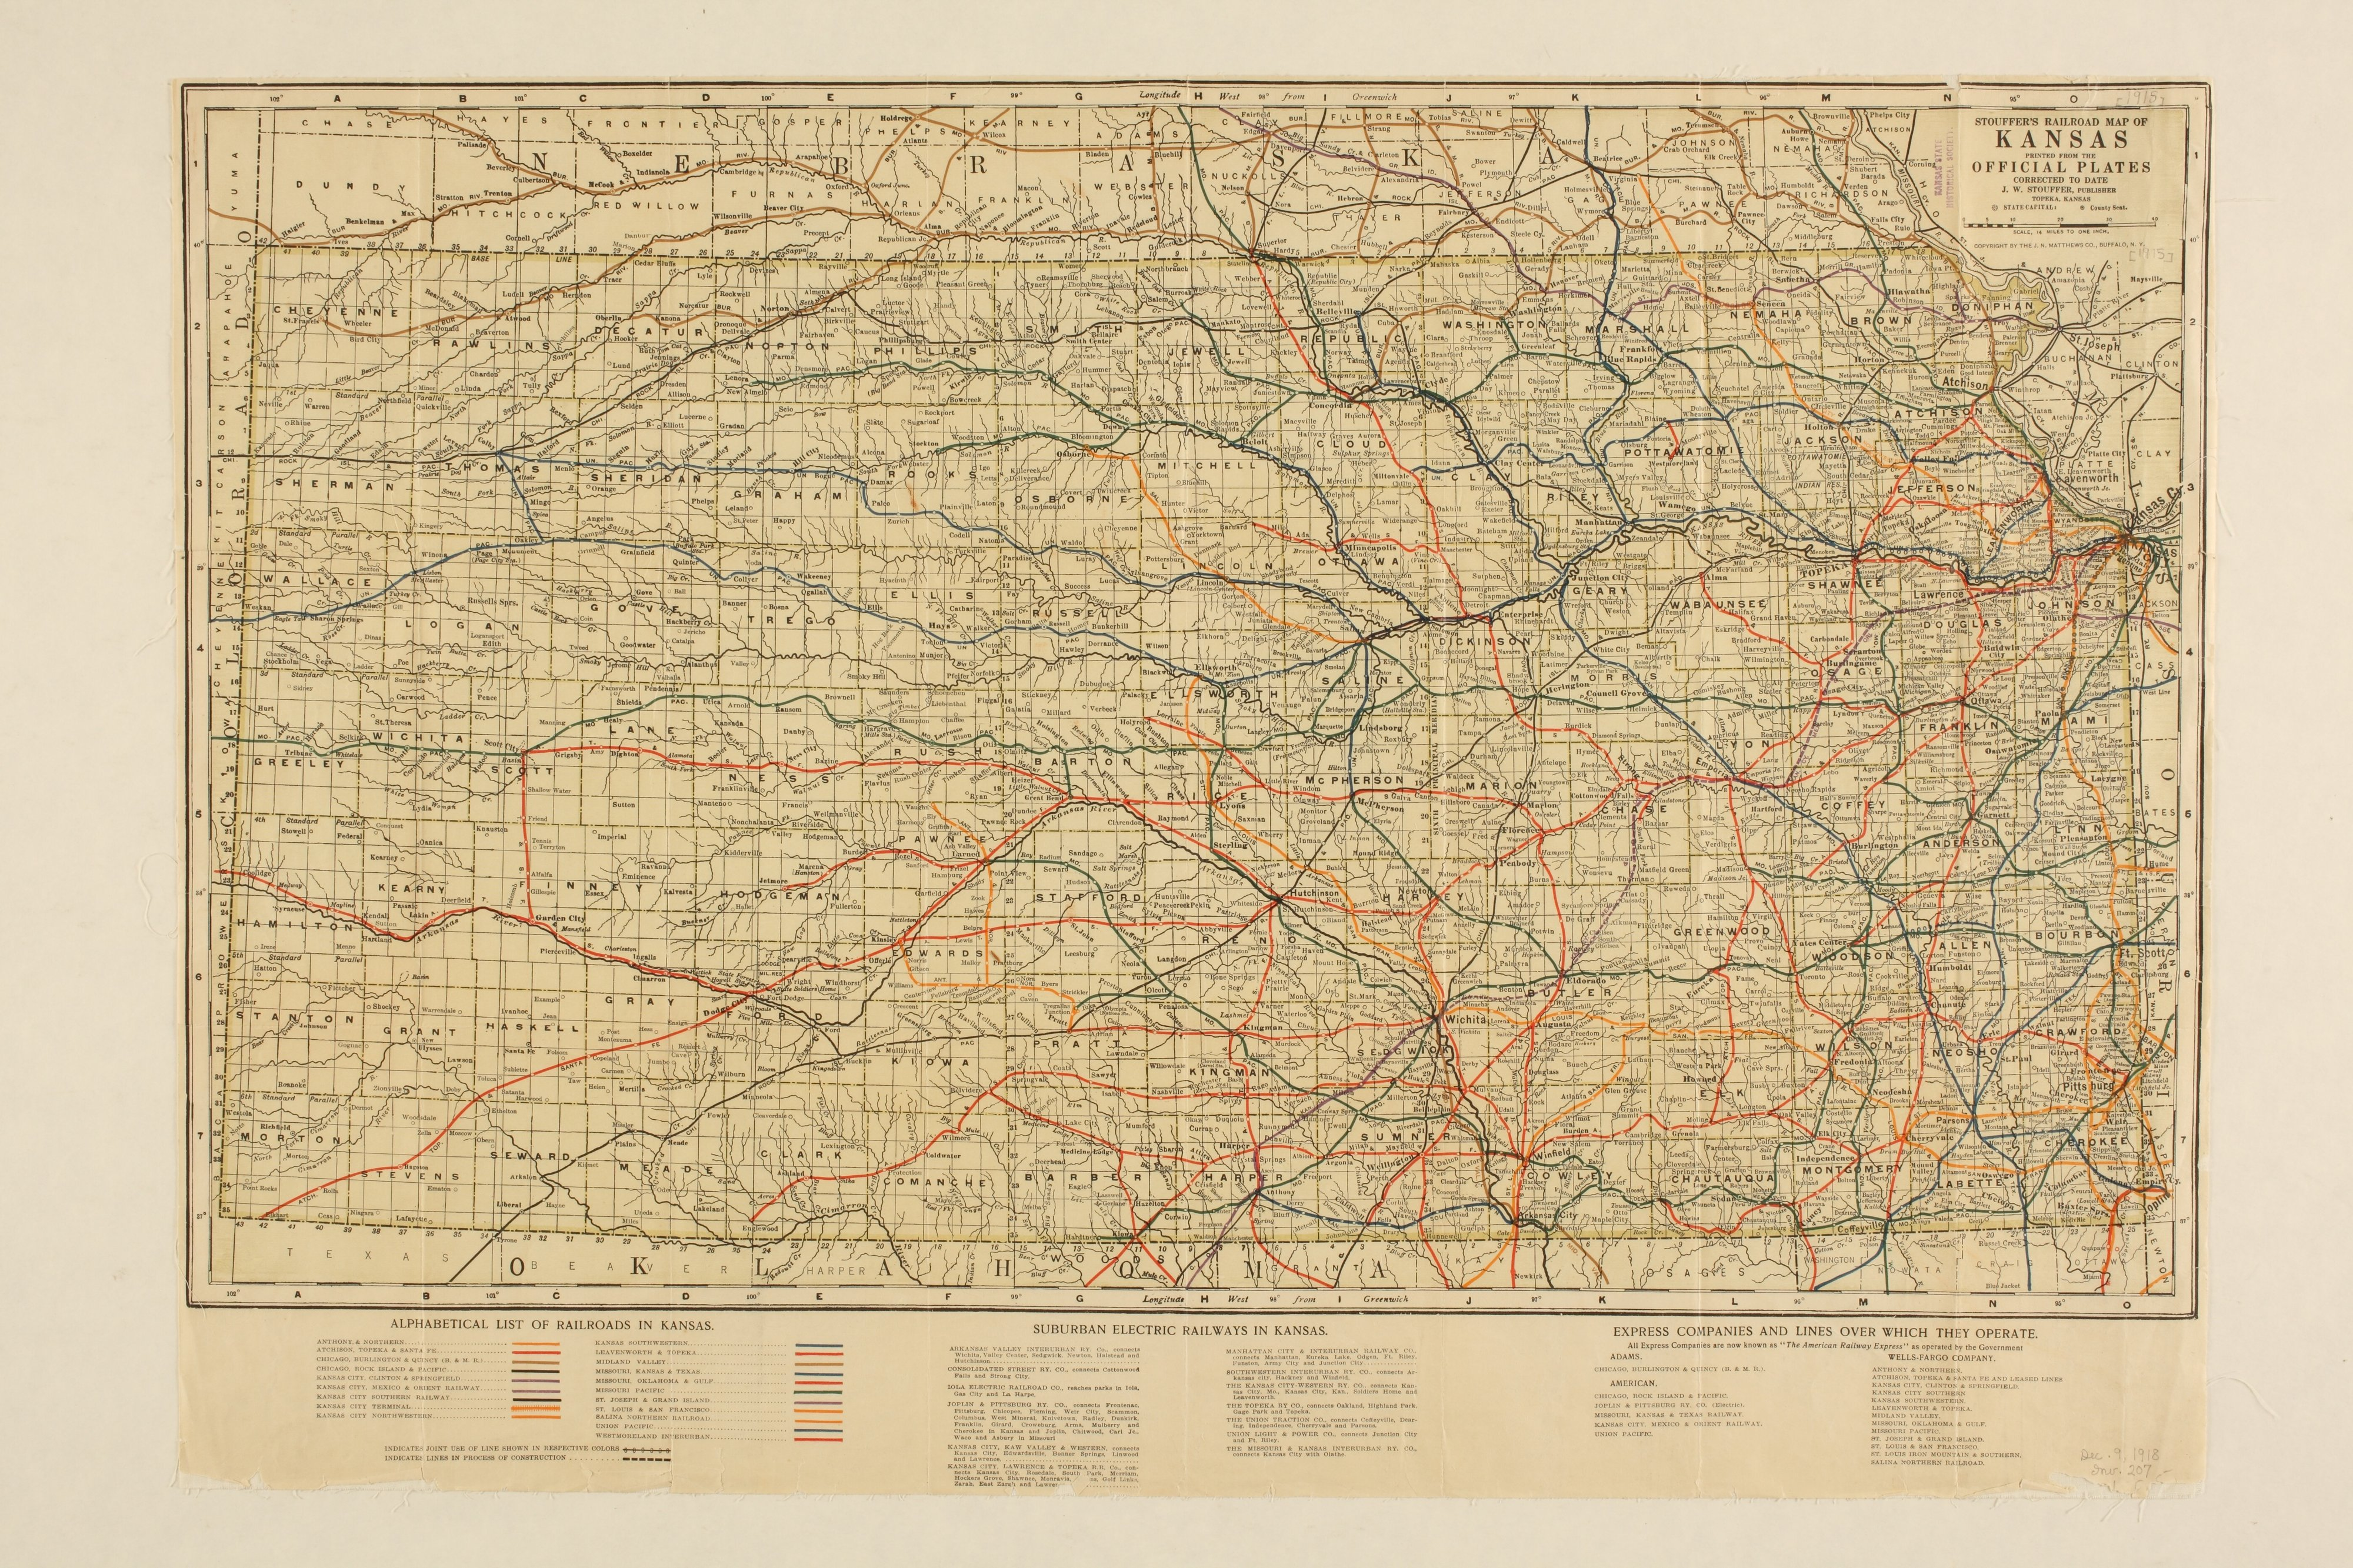 Stouffer's railroad map of Kansas